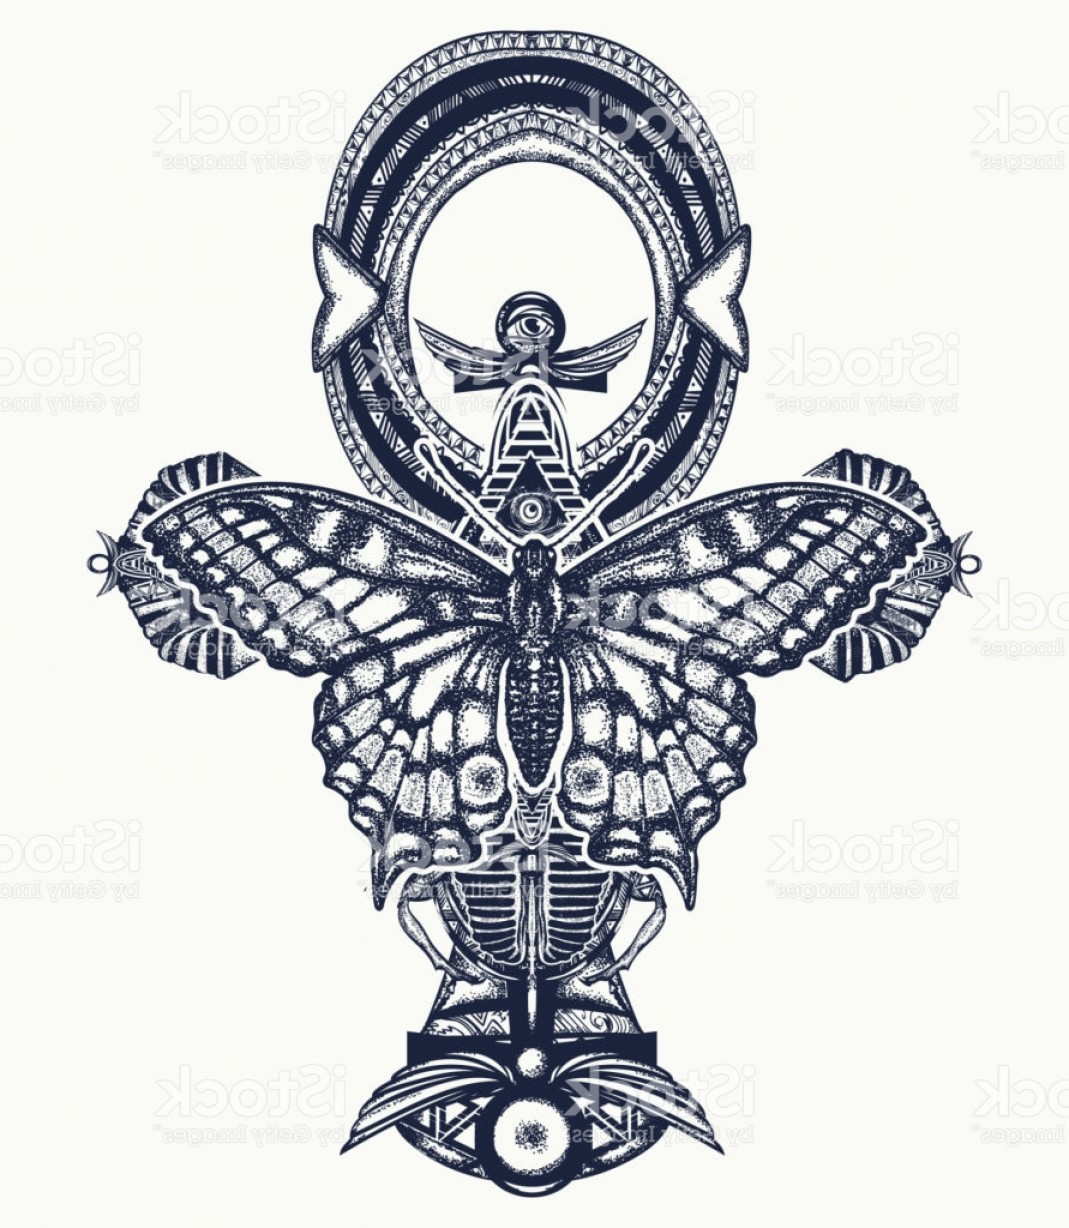 Vector Design Of An Ankh: Ankh And Butterfly Tattoo And T Shirt Design Ancient Egyptian Cross T Shirt Design Gm